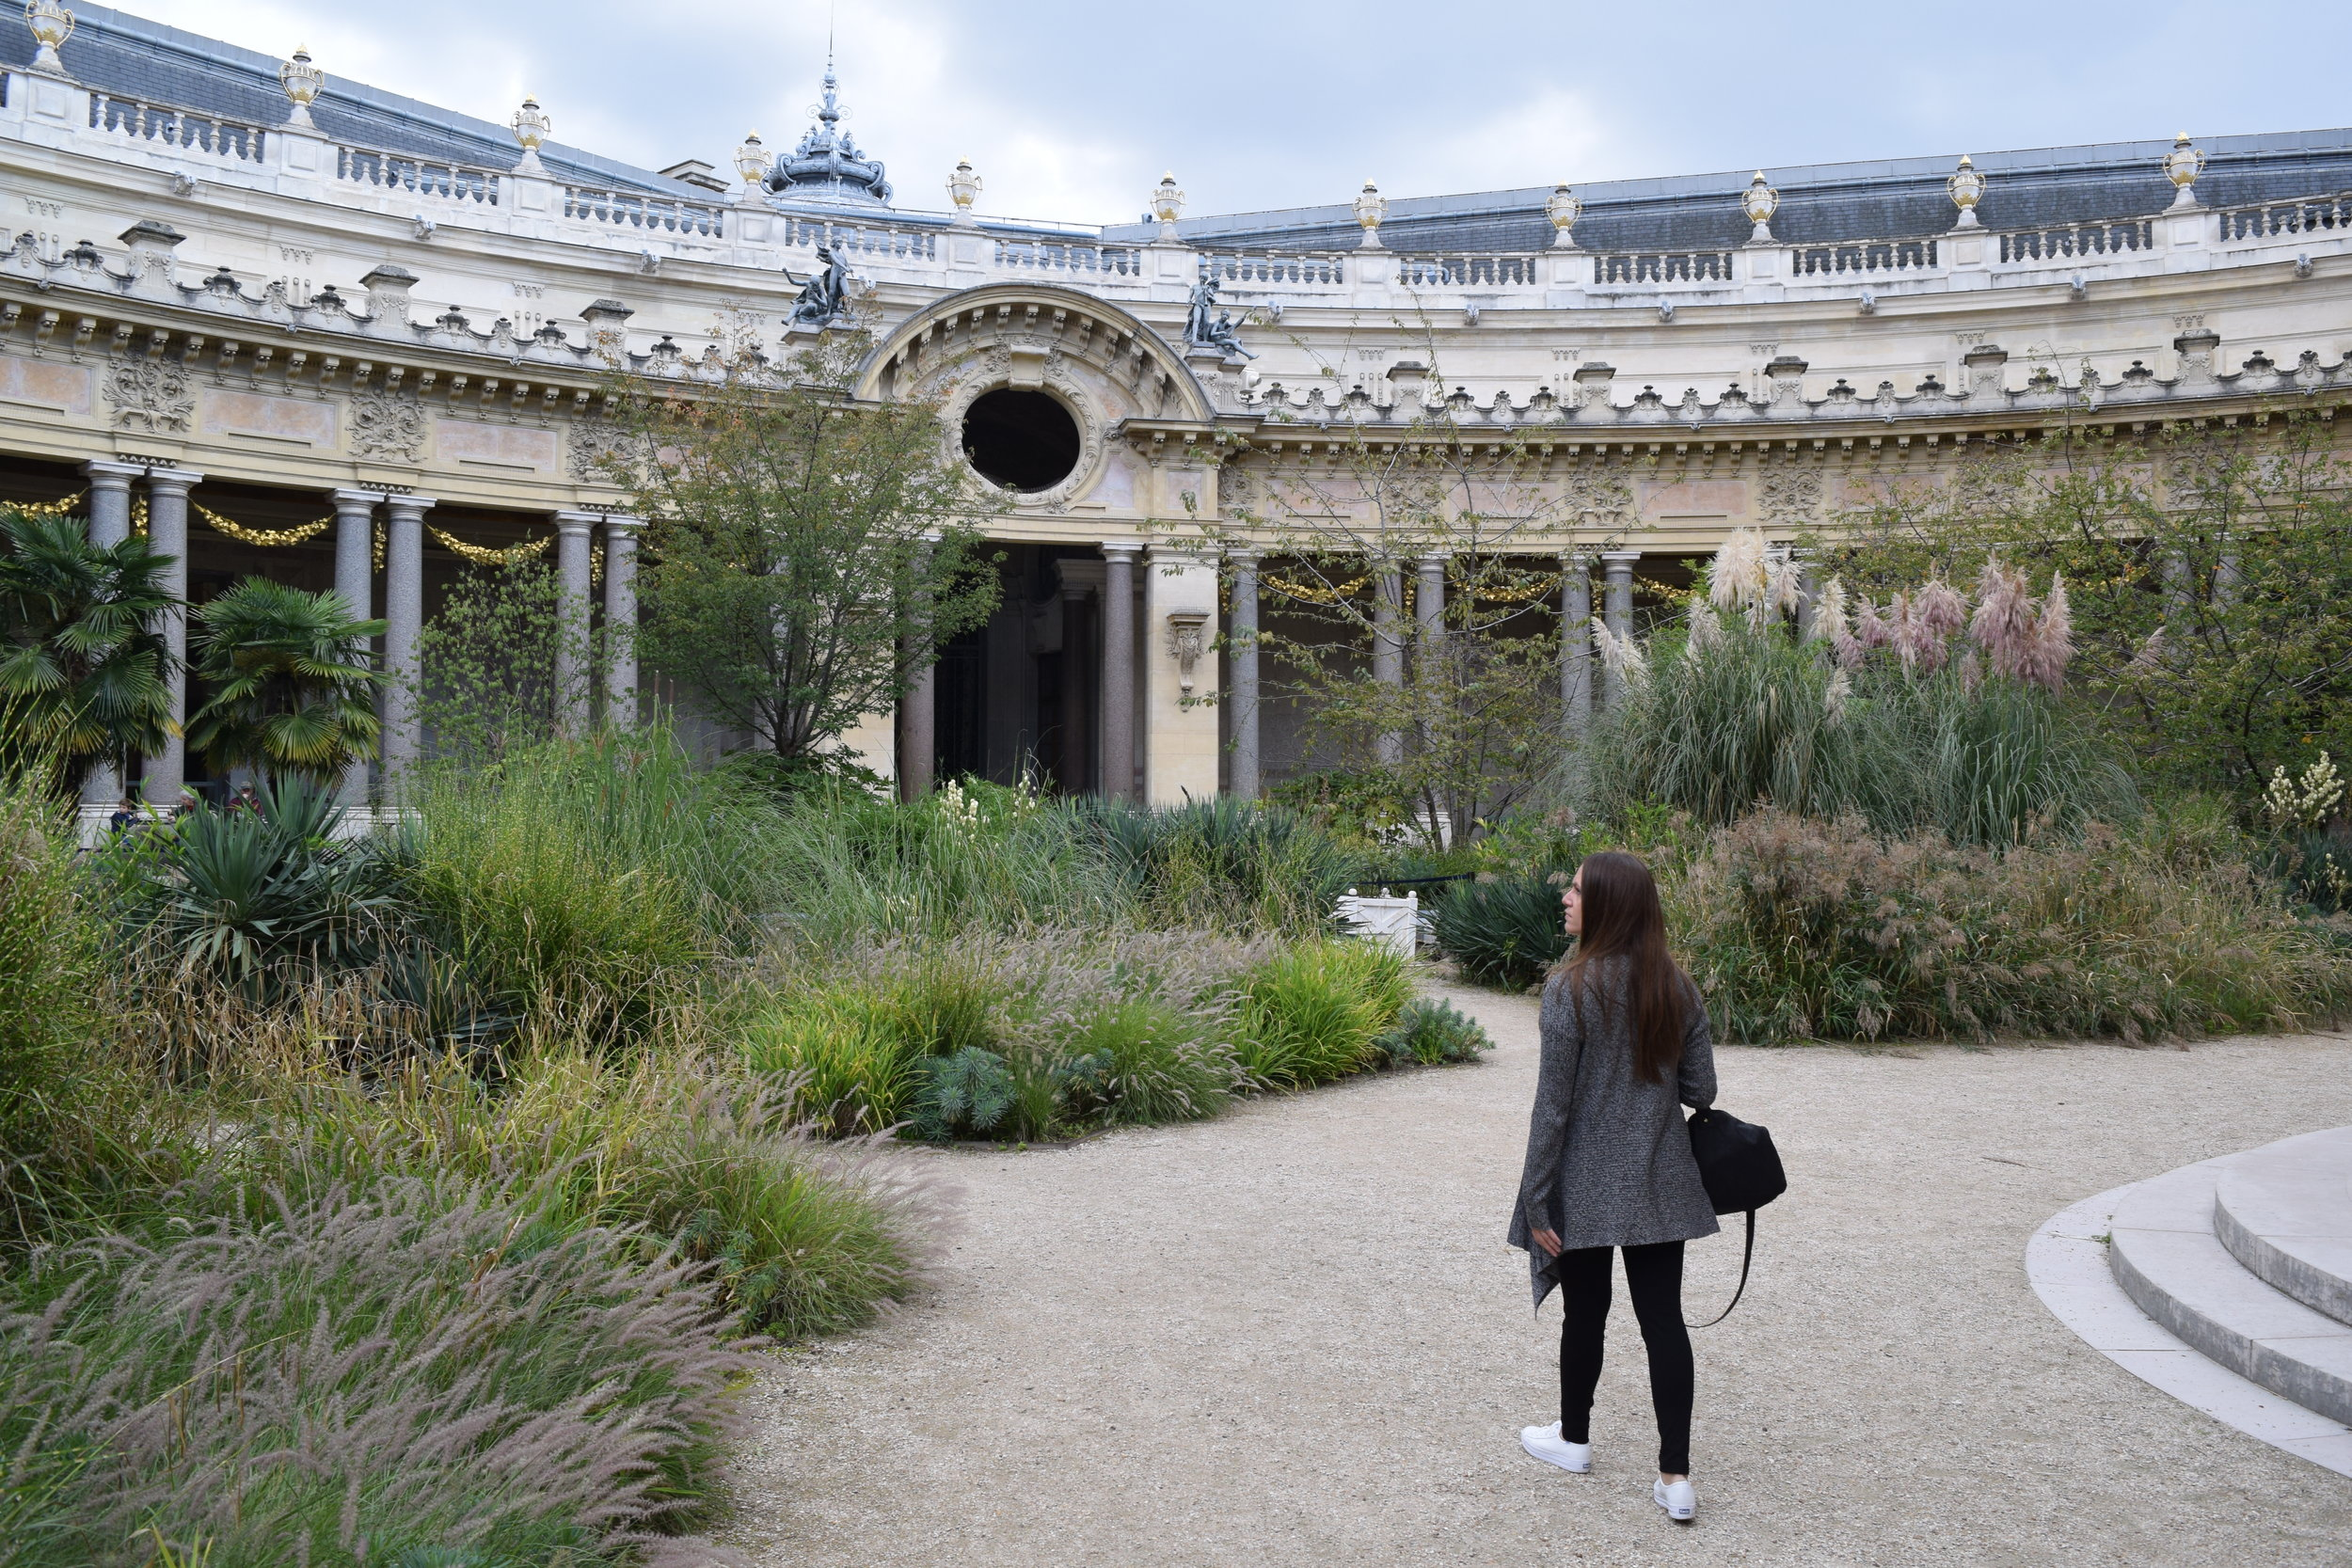 Discovering the gardens at the Petit Palais